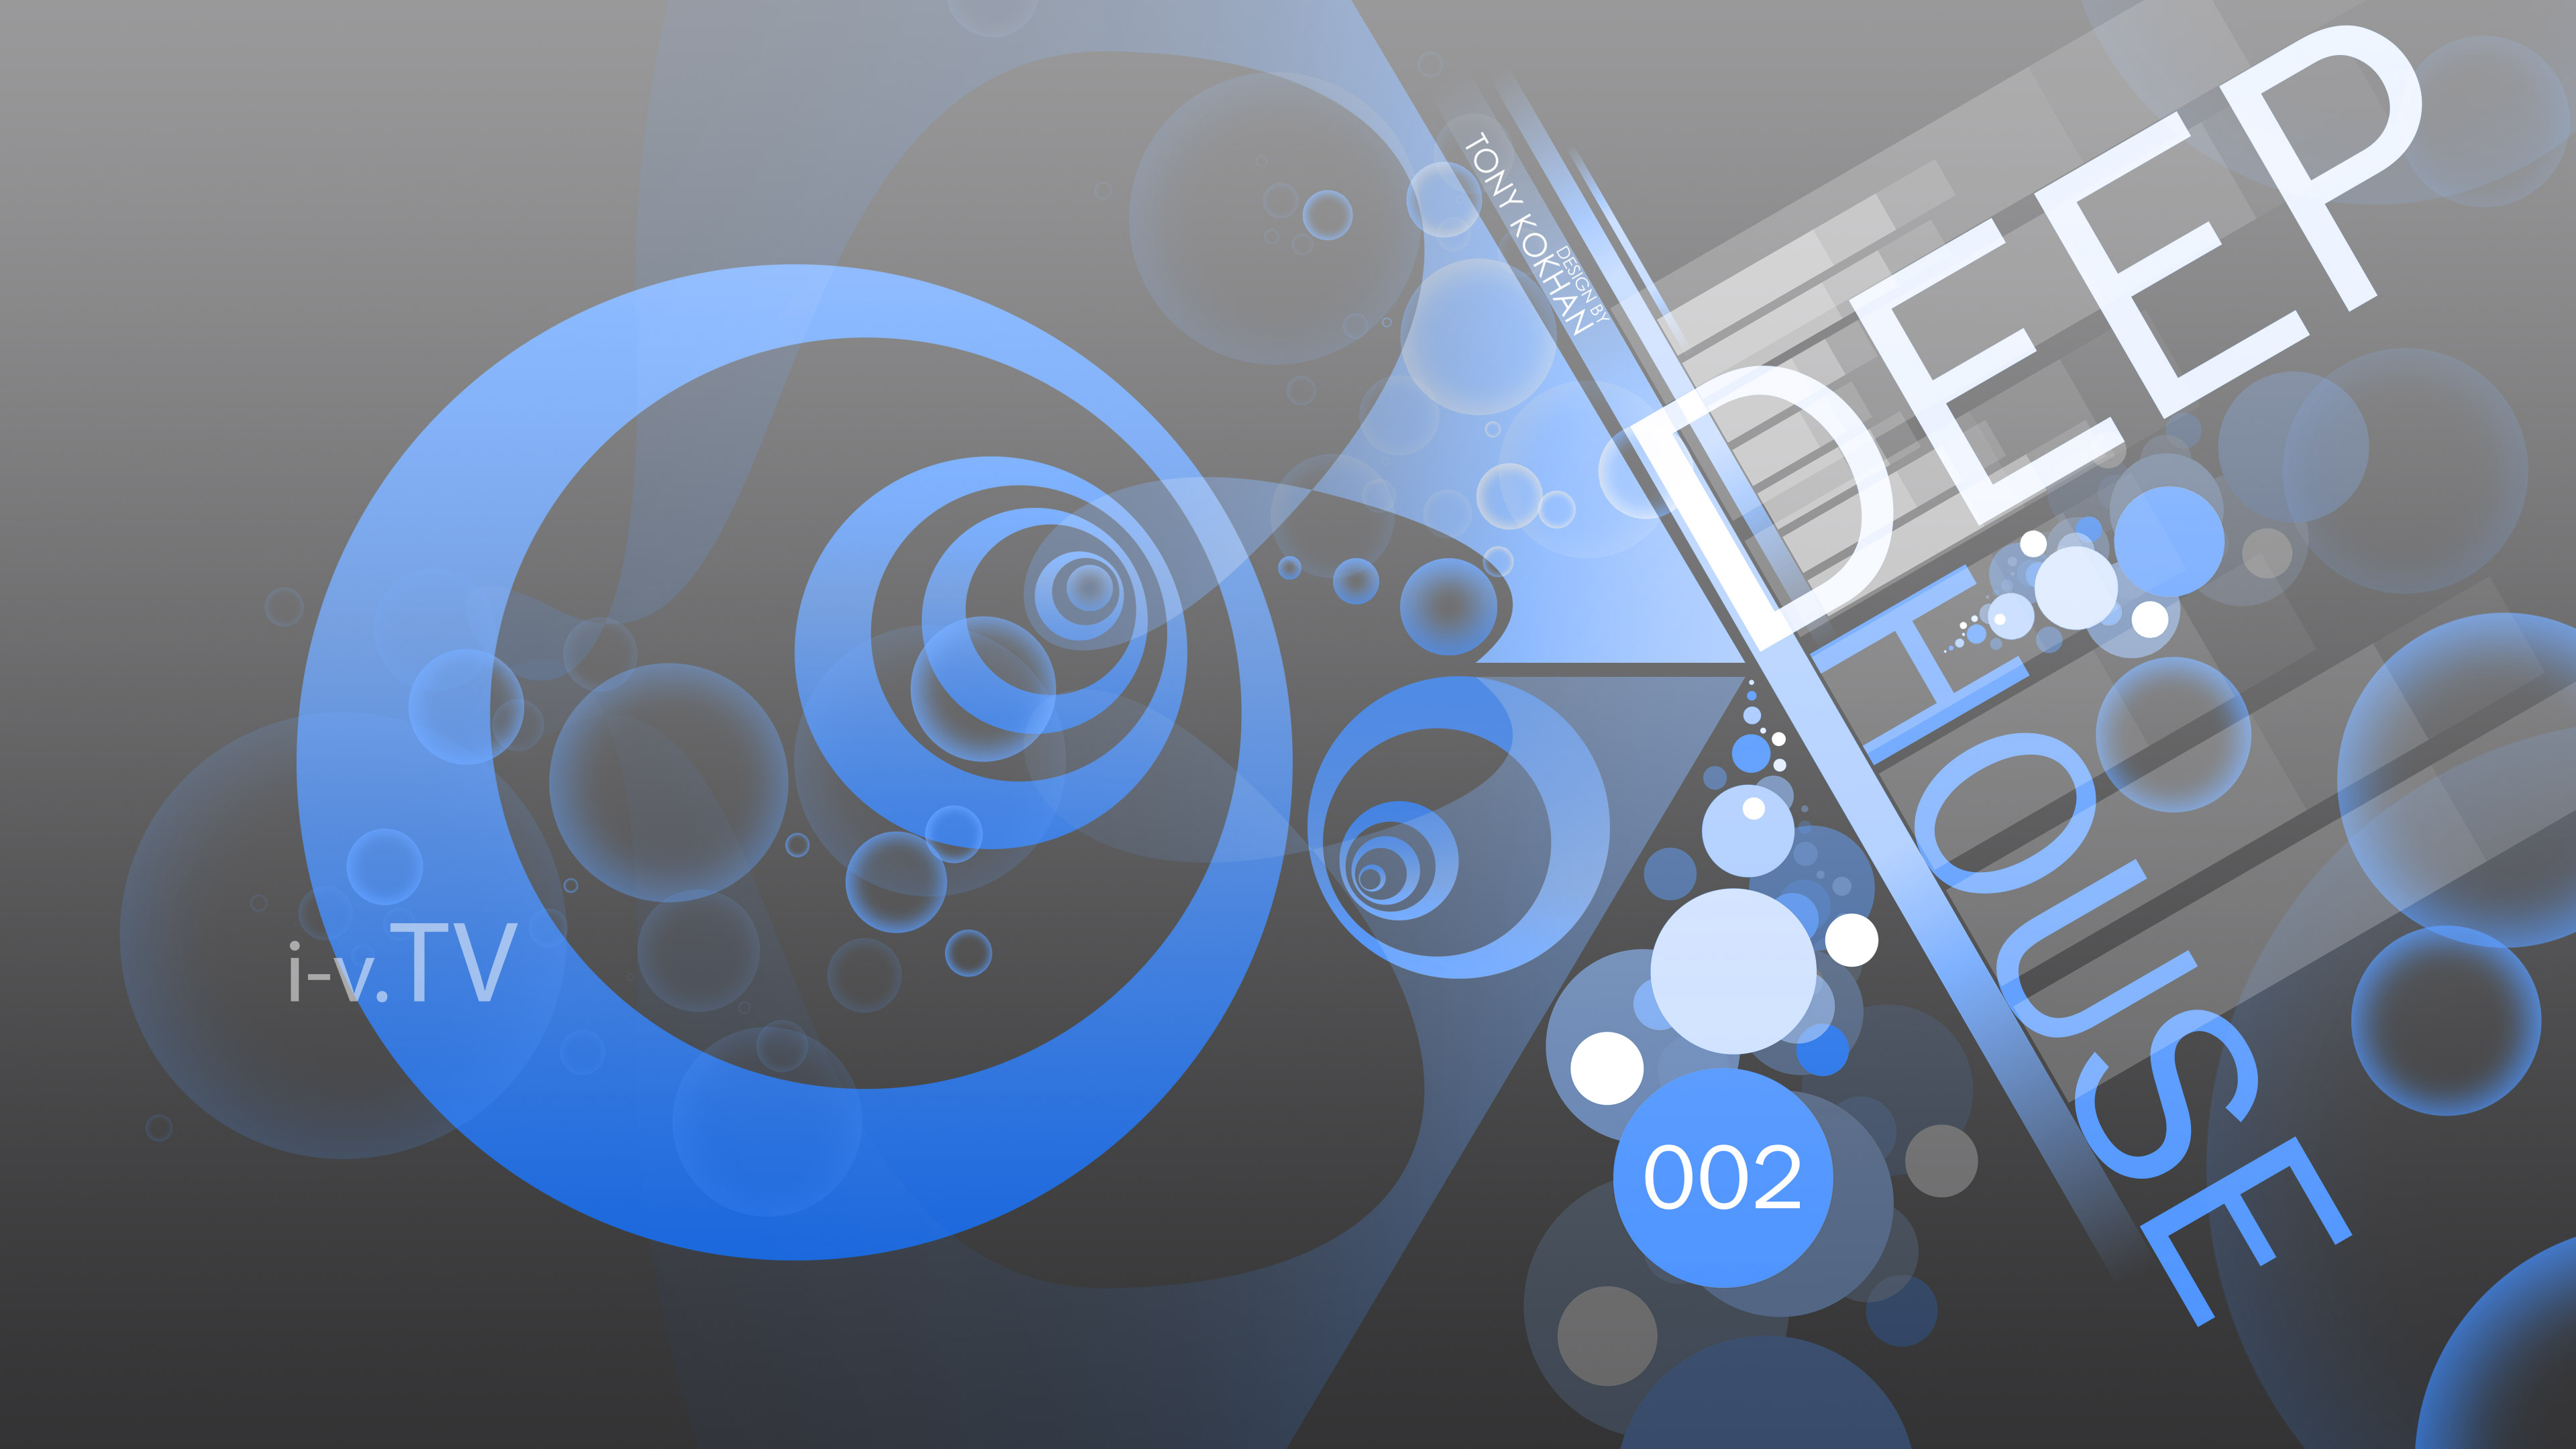 Deep House Music eQ Simple Creative Two Abstract Style 3840x2160